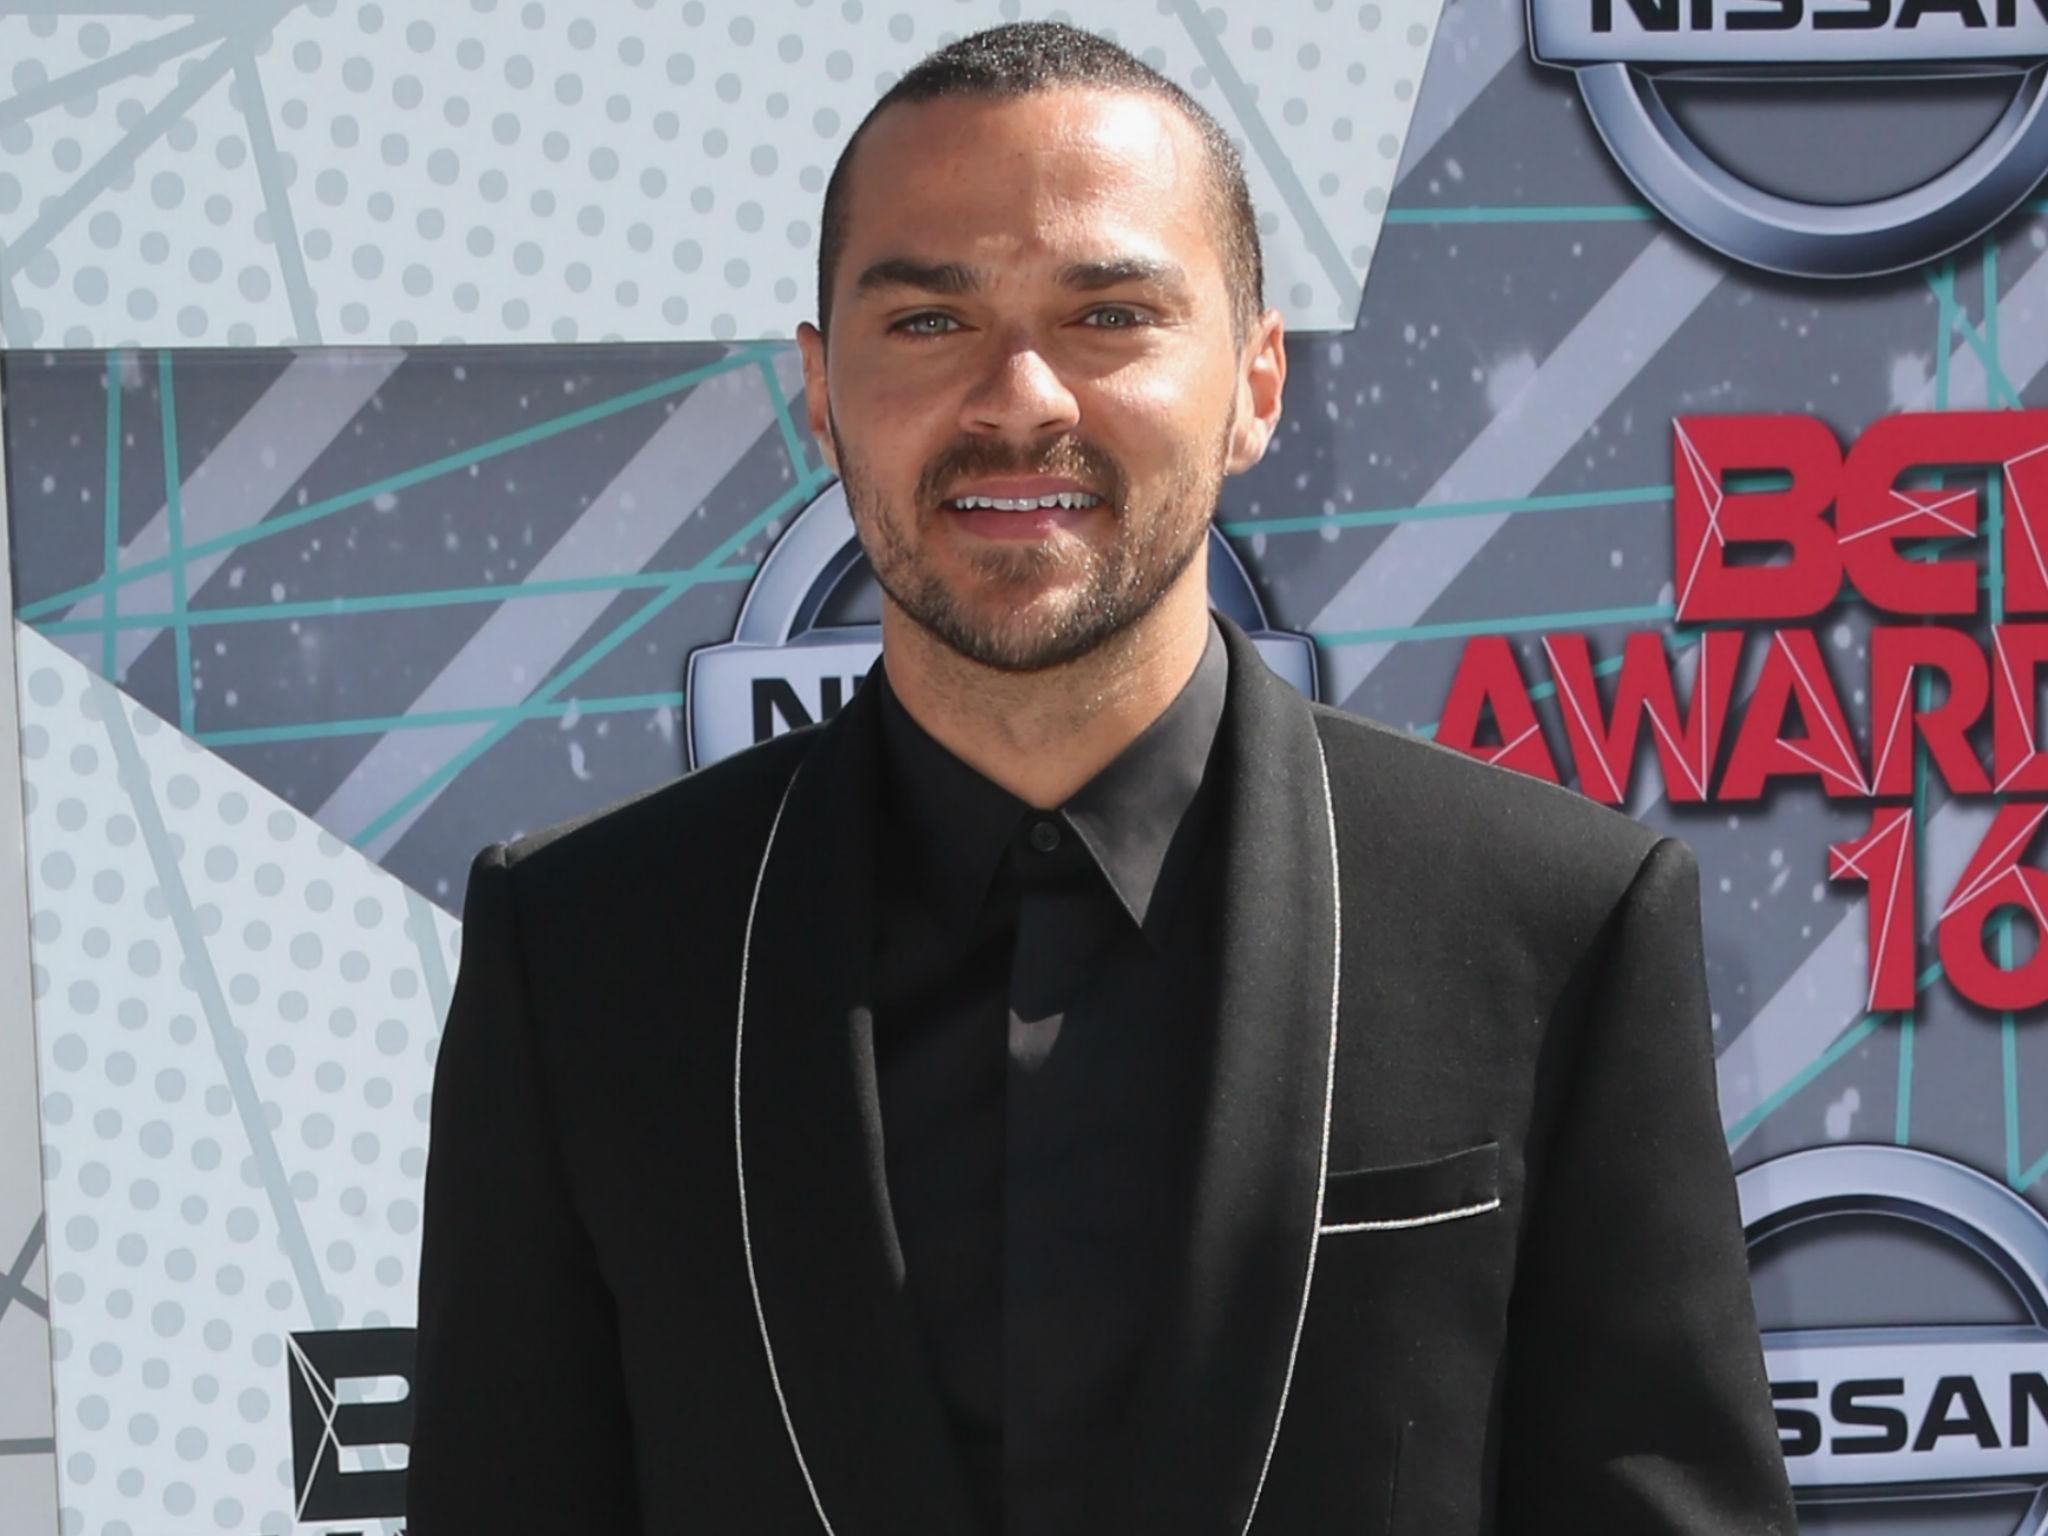 Read Jesse Williams powerful BET acceptance speech in full